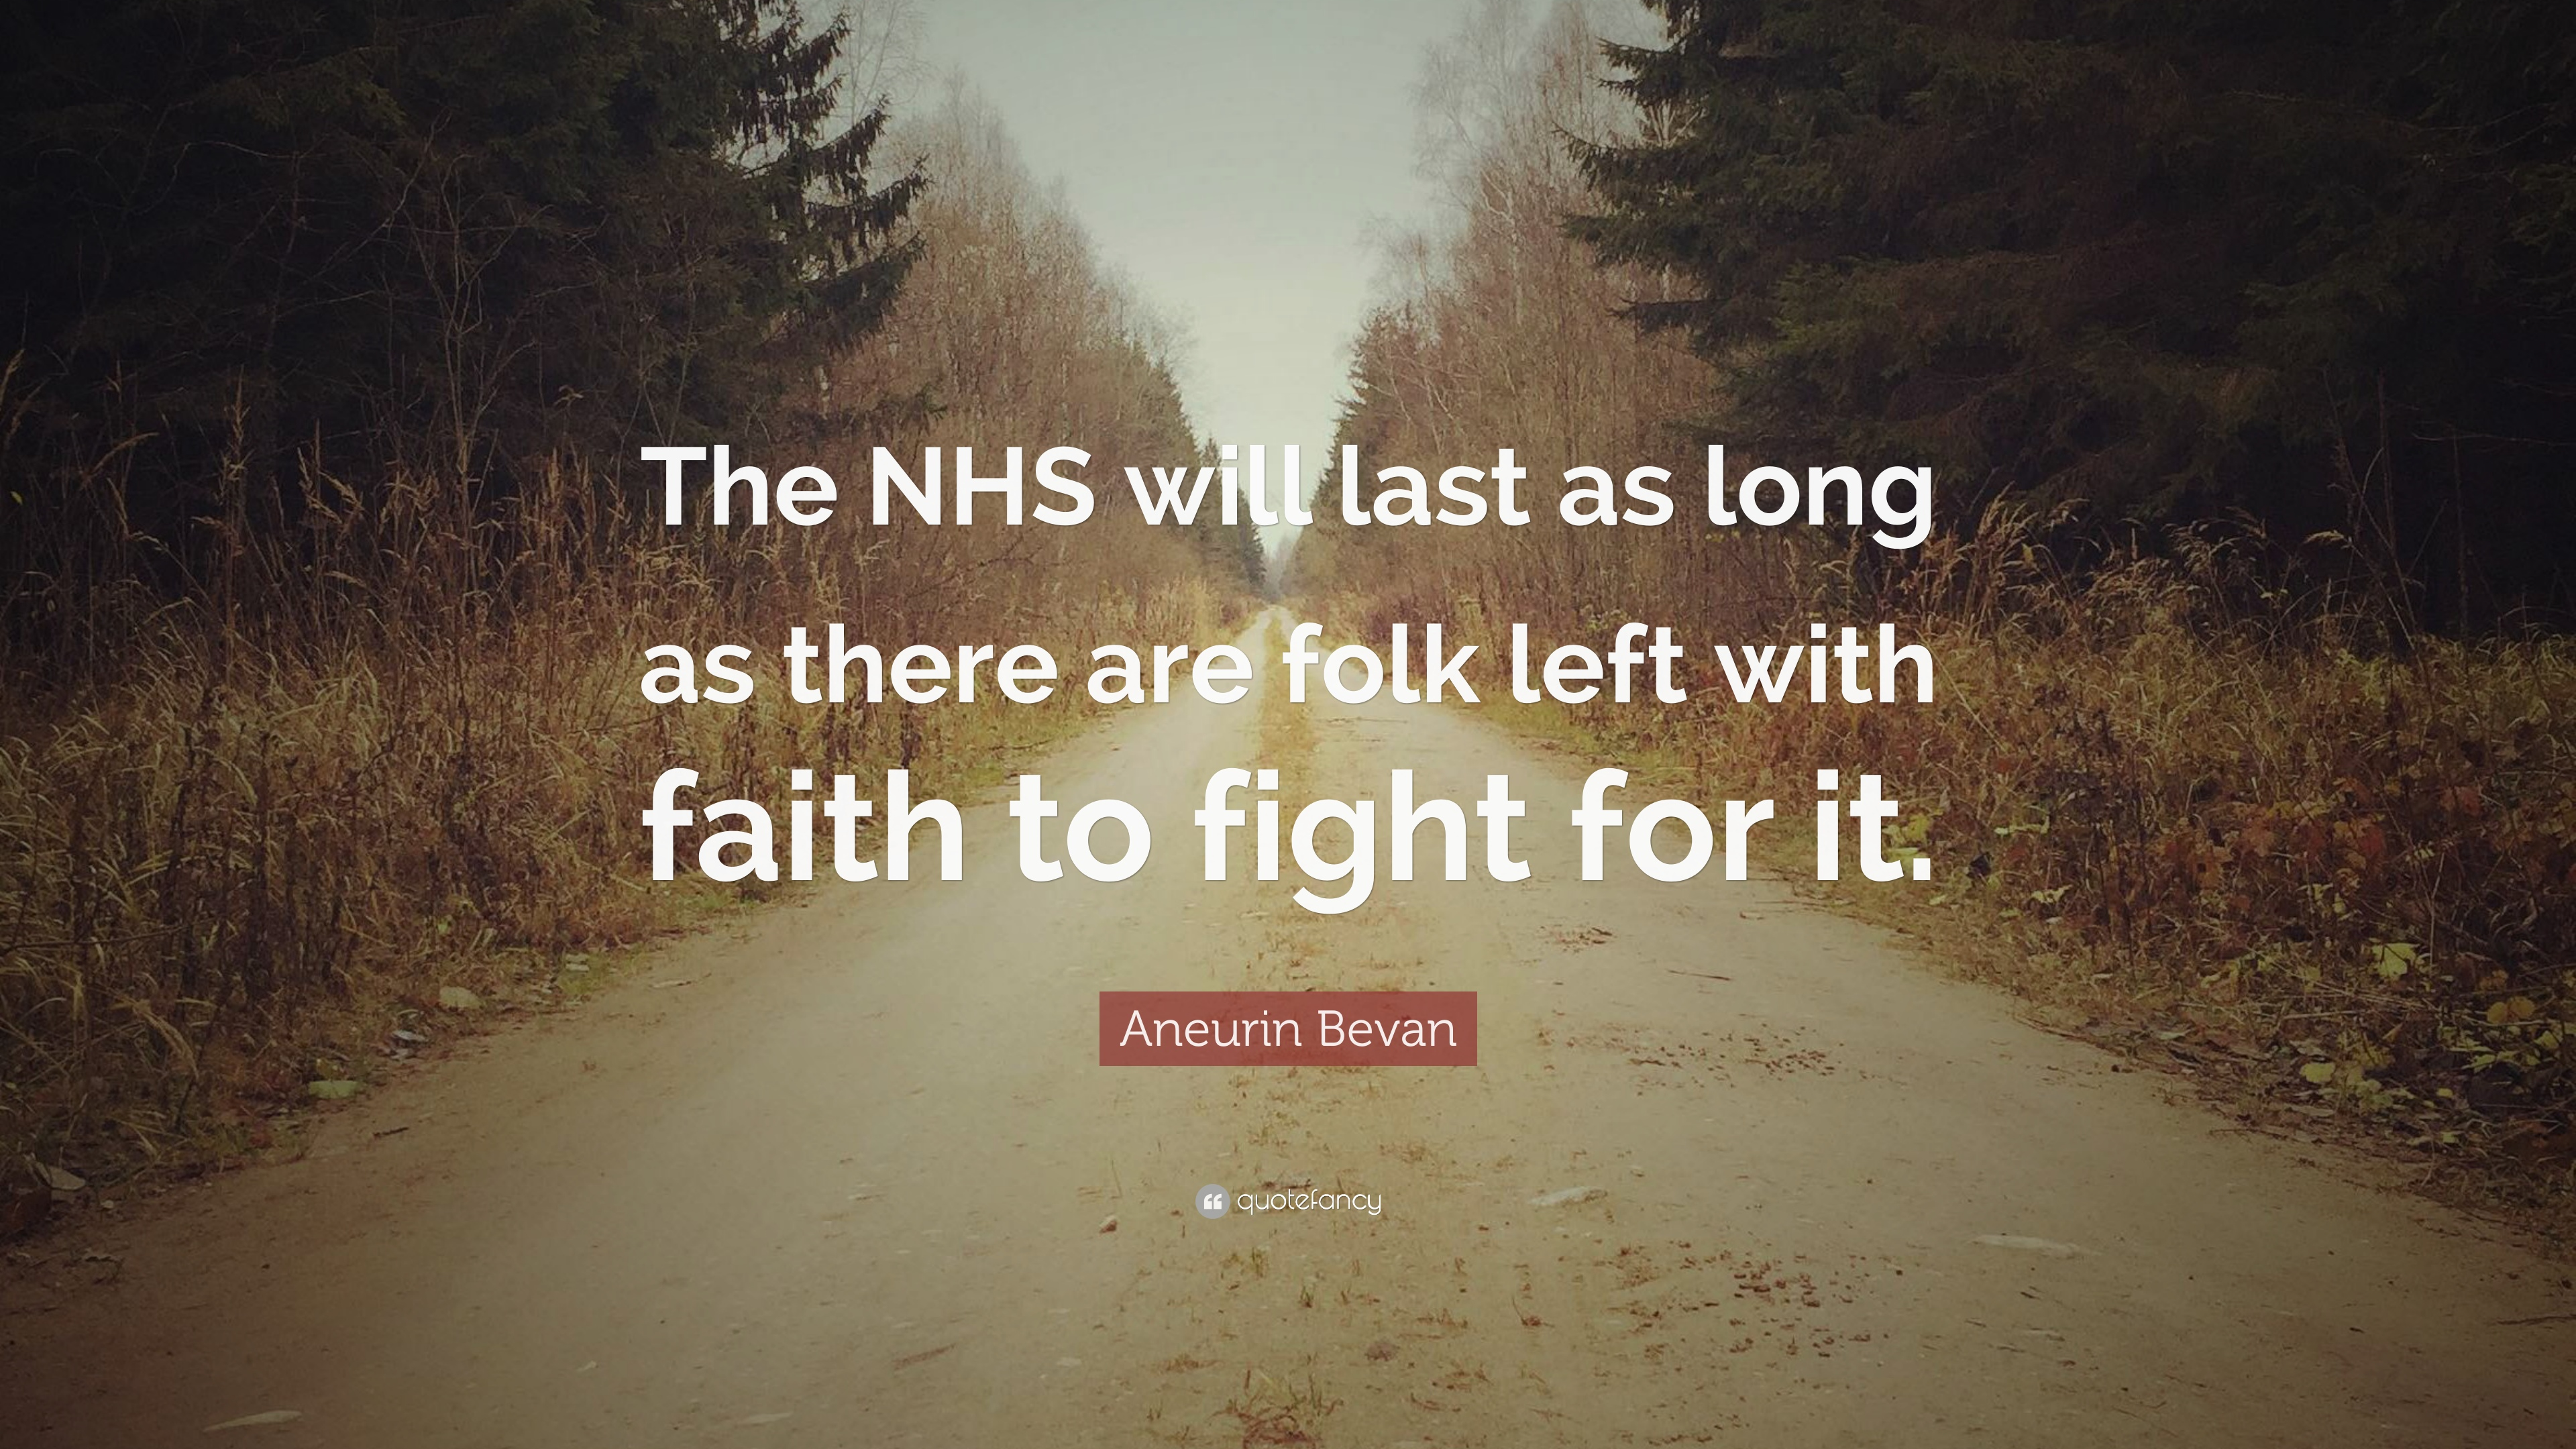 nhs quotes Nhs quotes hey peeps i'm nurin hazimah sabirin i write quotes and hope to inspire people one day 😊 add my private account @nurinhazimah1907 have a lit day youtube/fbzsbhcwbiw.